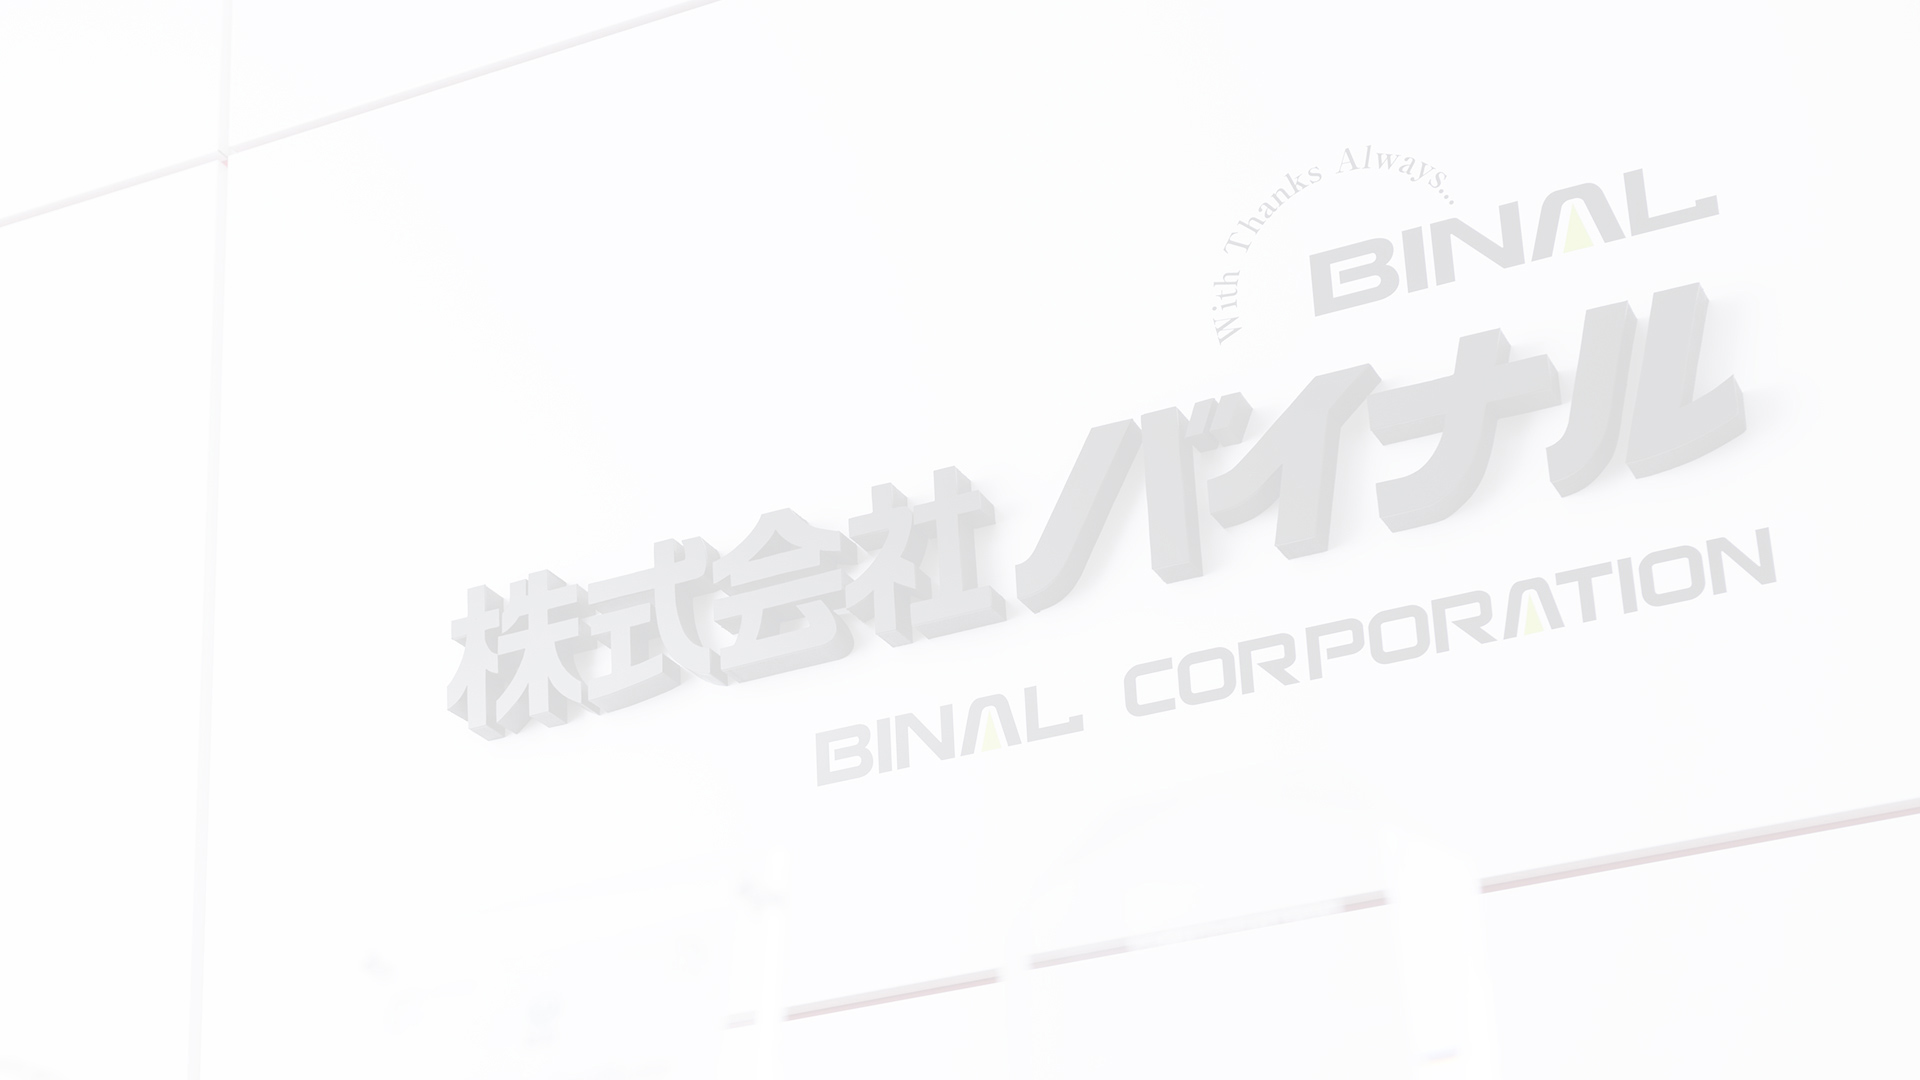 Our Singapore subsidiary BINAL Asia Pacific (SG) Pte. Ltd. started full-scale sales activities targeting local Japanese companies. Local IT companies are also paying attention.